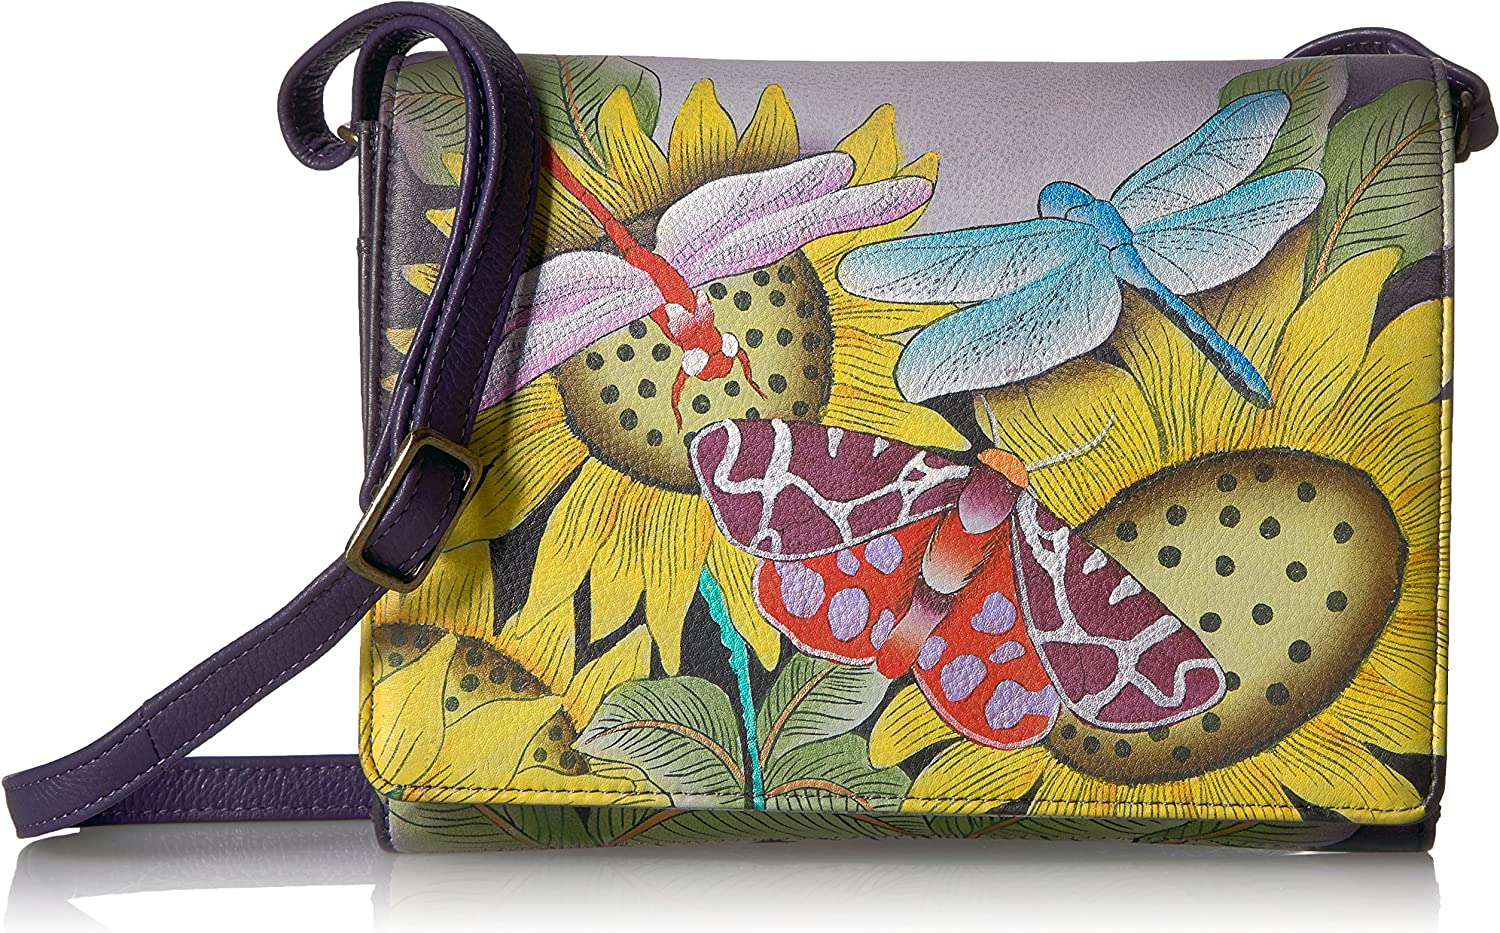 Anuschka Anna Handpainted Leather Women's Flap Cross Body